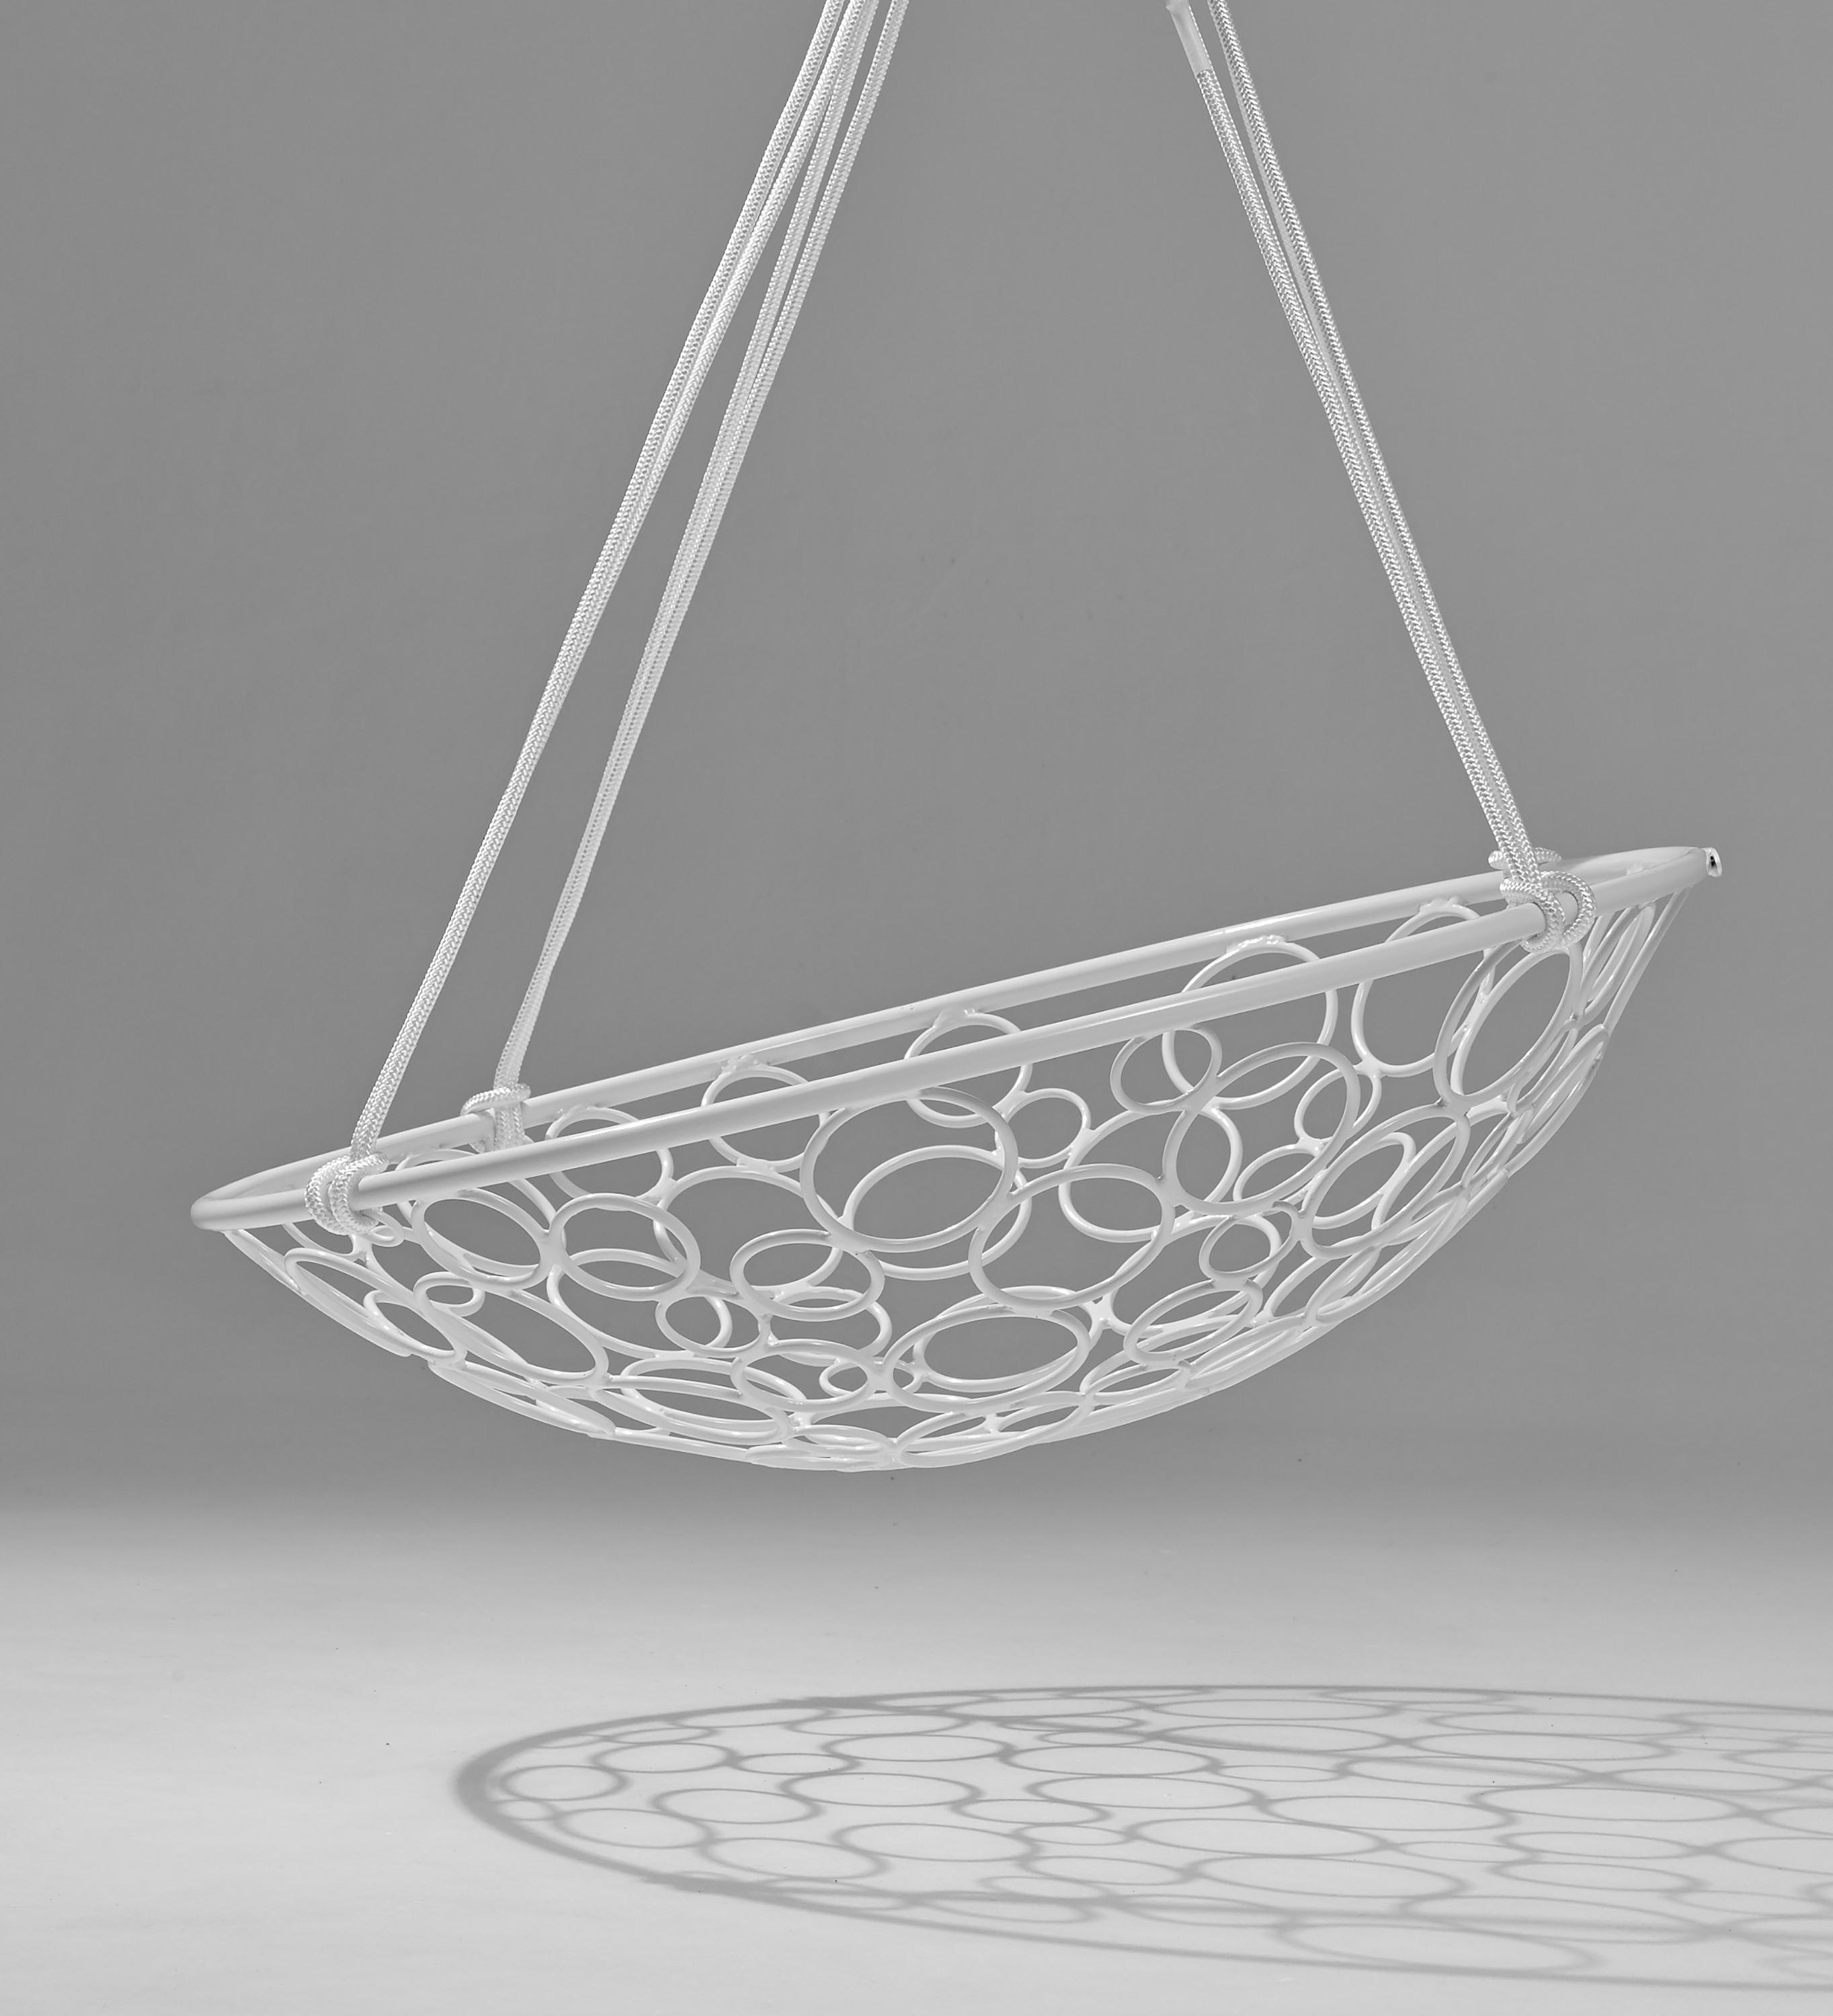 Lilly Circle White Modern Hammock Hanging Designer Swing Chair Daybed  Lounge Hotel Contract Furniture Luxury